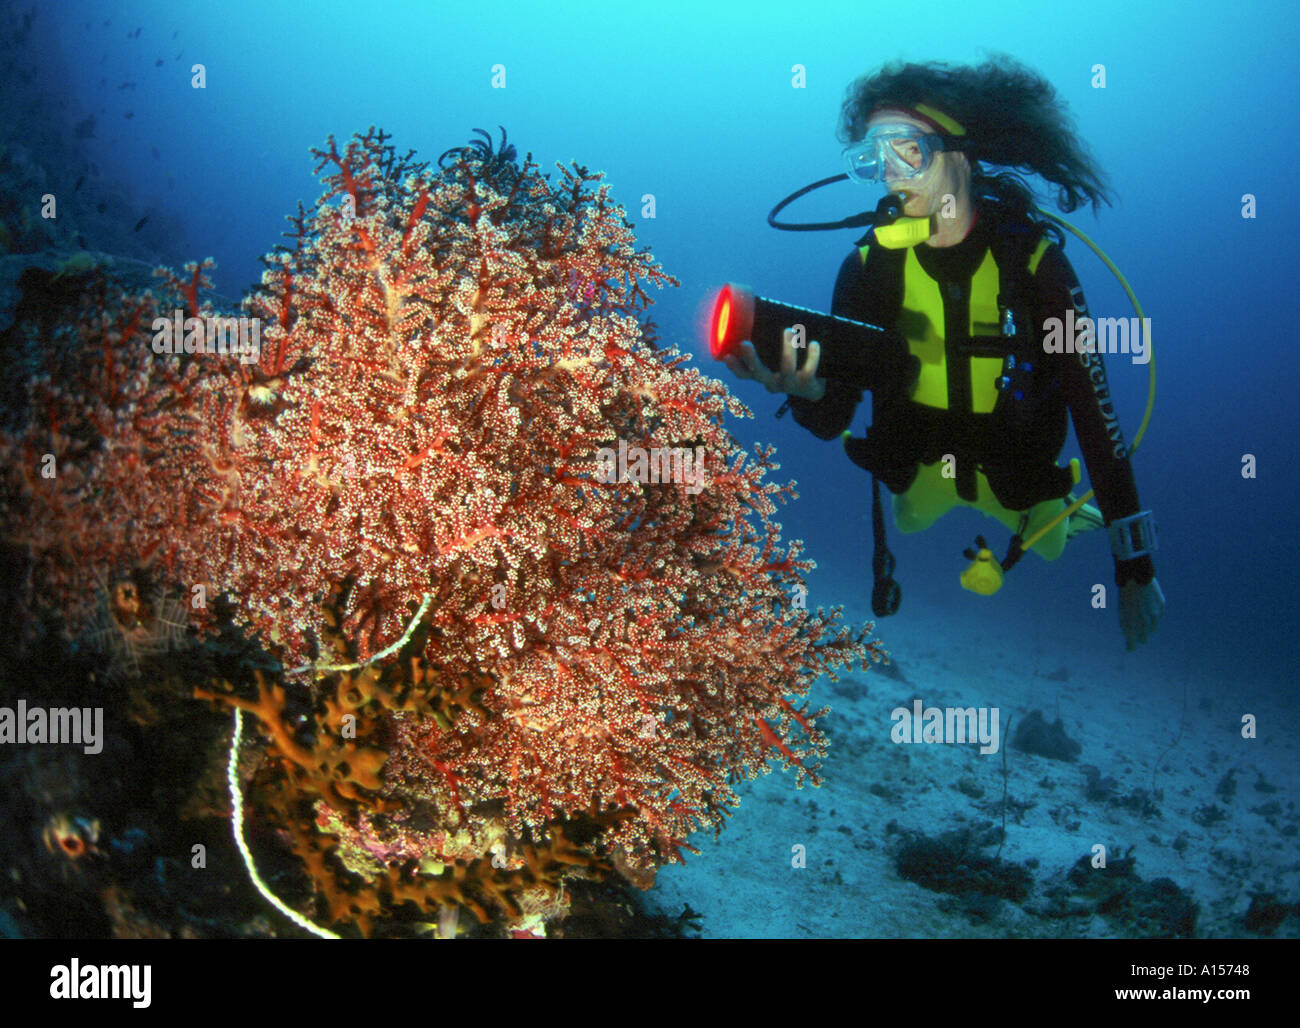 Diver beside a coral, indian ocean, Indonesia - Stock Image